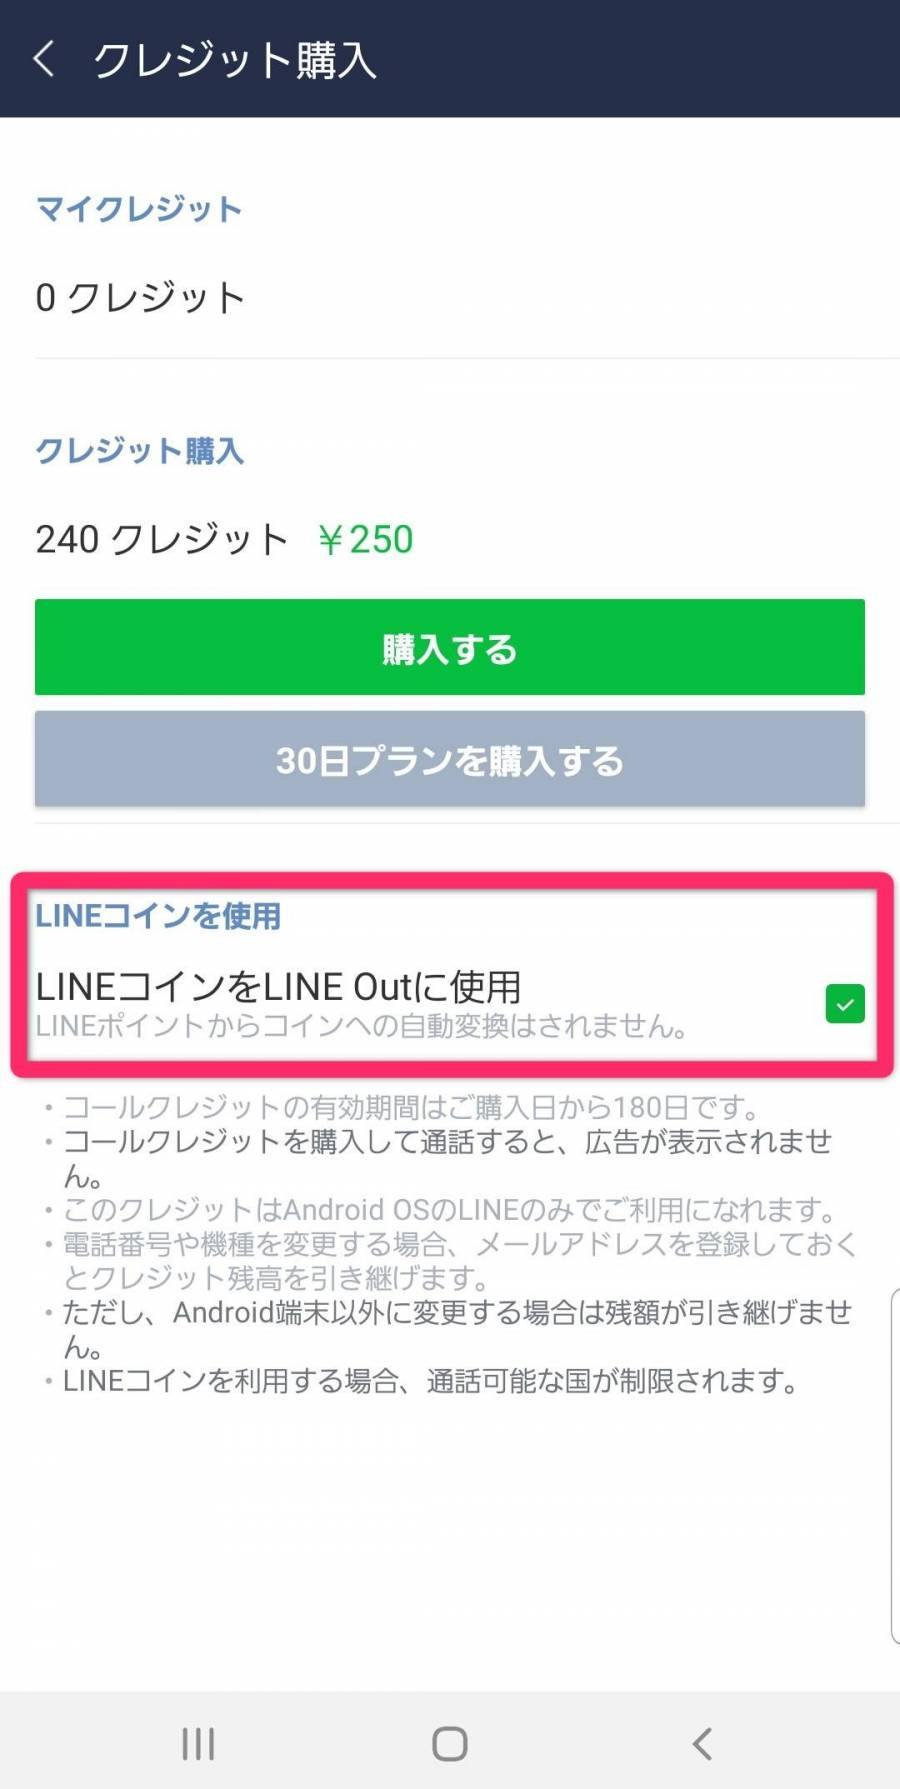 LINE Out コールクレジット